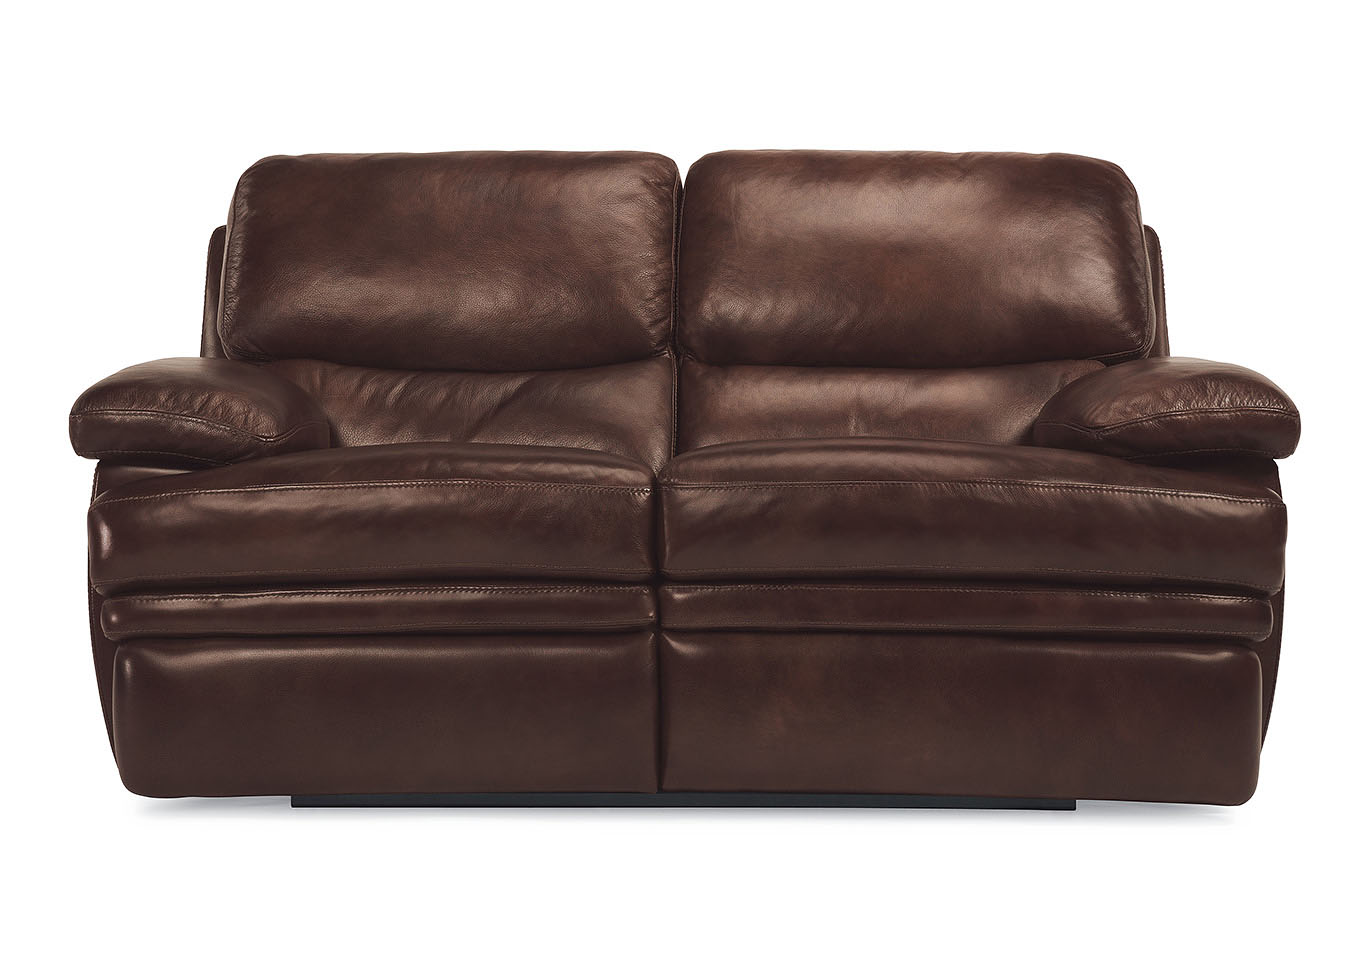 Dylan Leather Reclining Loveseat,Flexsteel